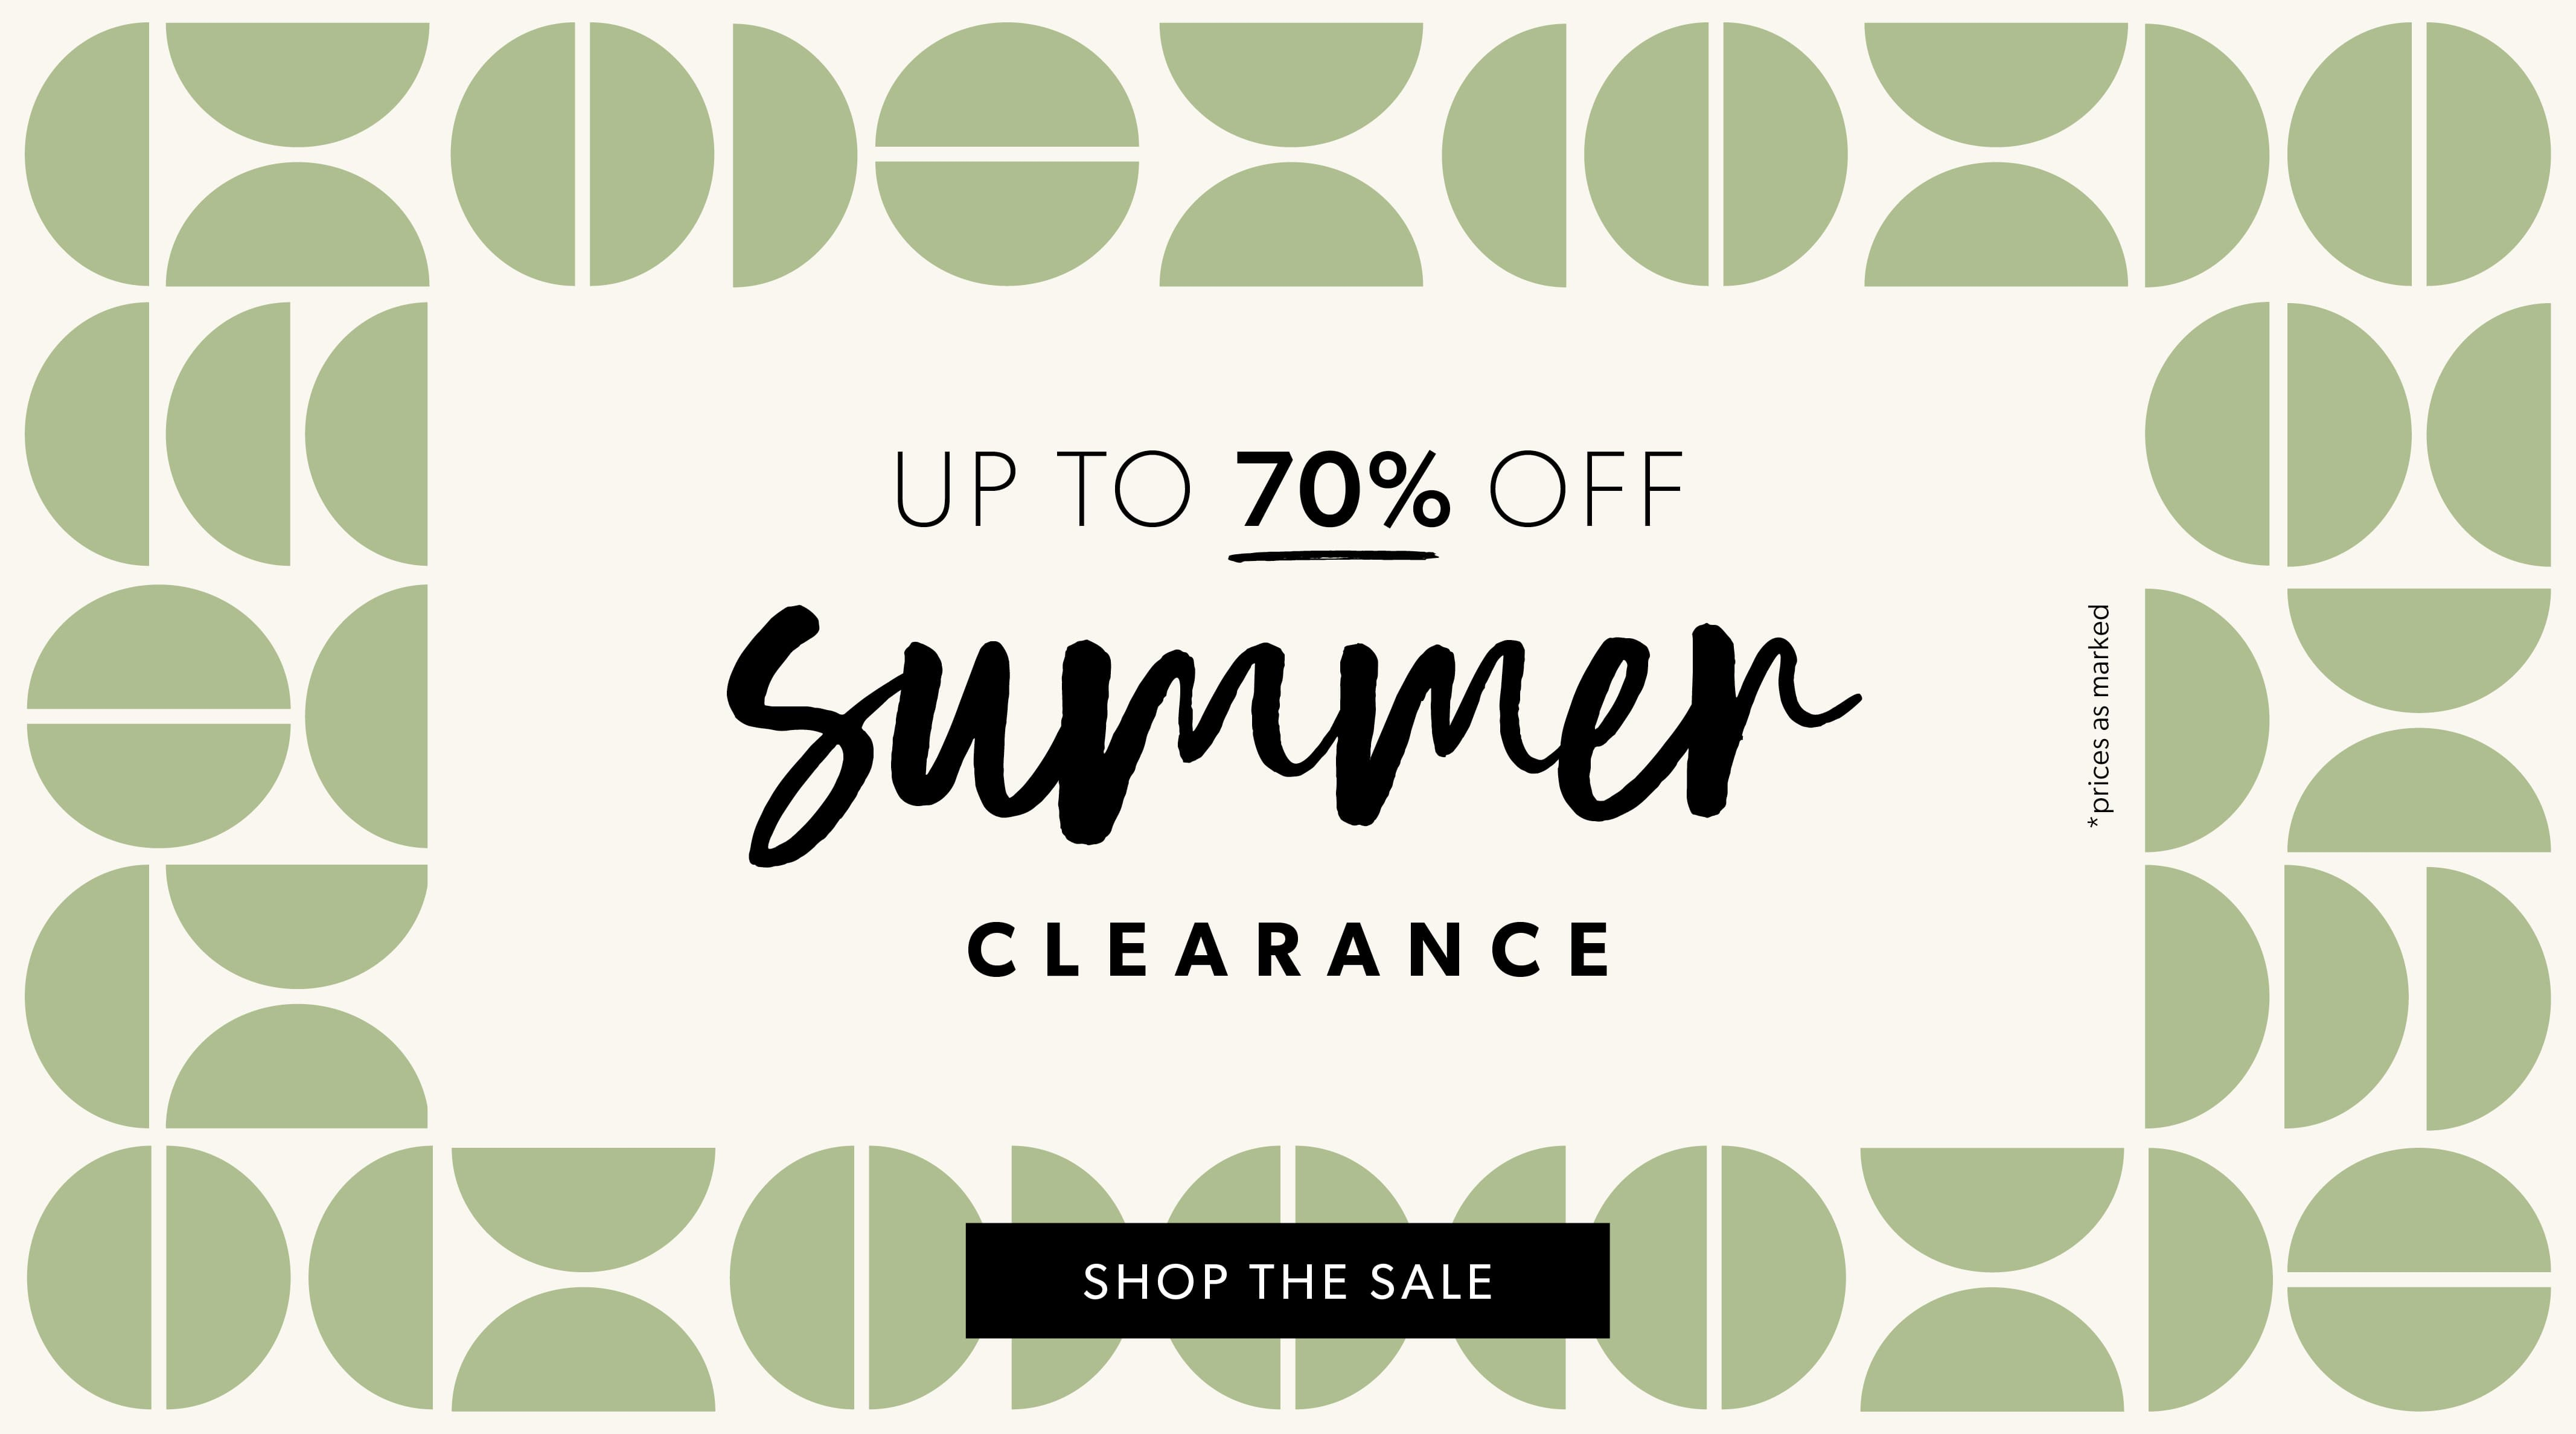 summer clearance - up to 70% off - shop the sale